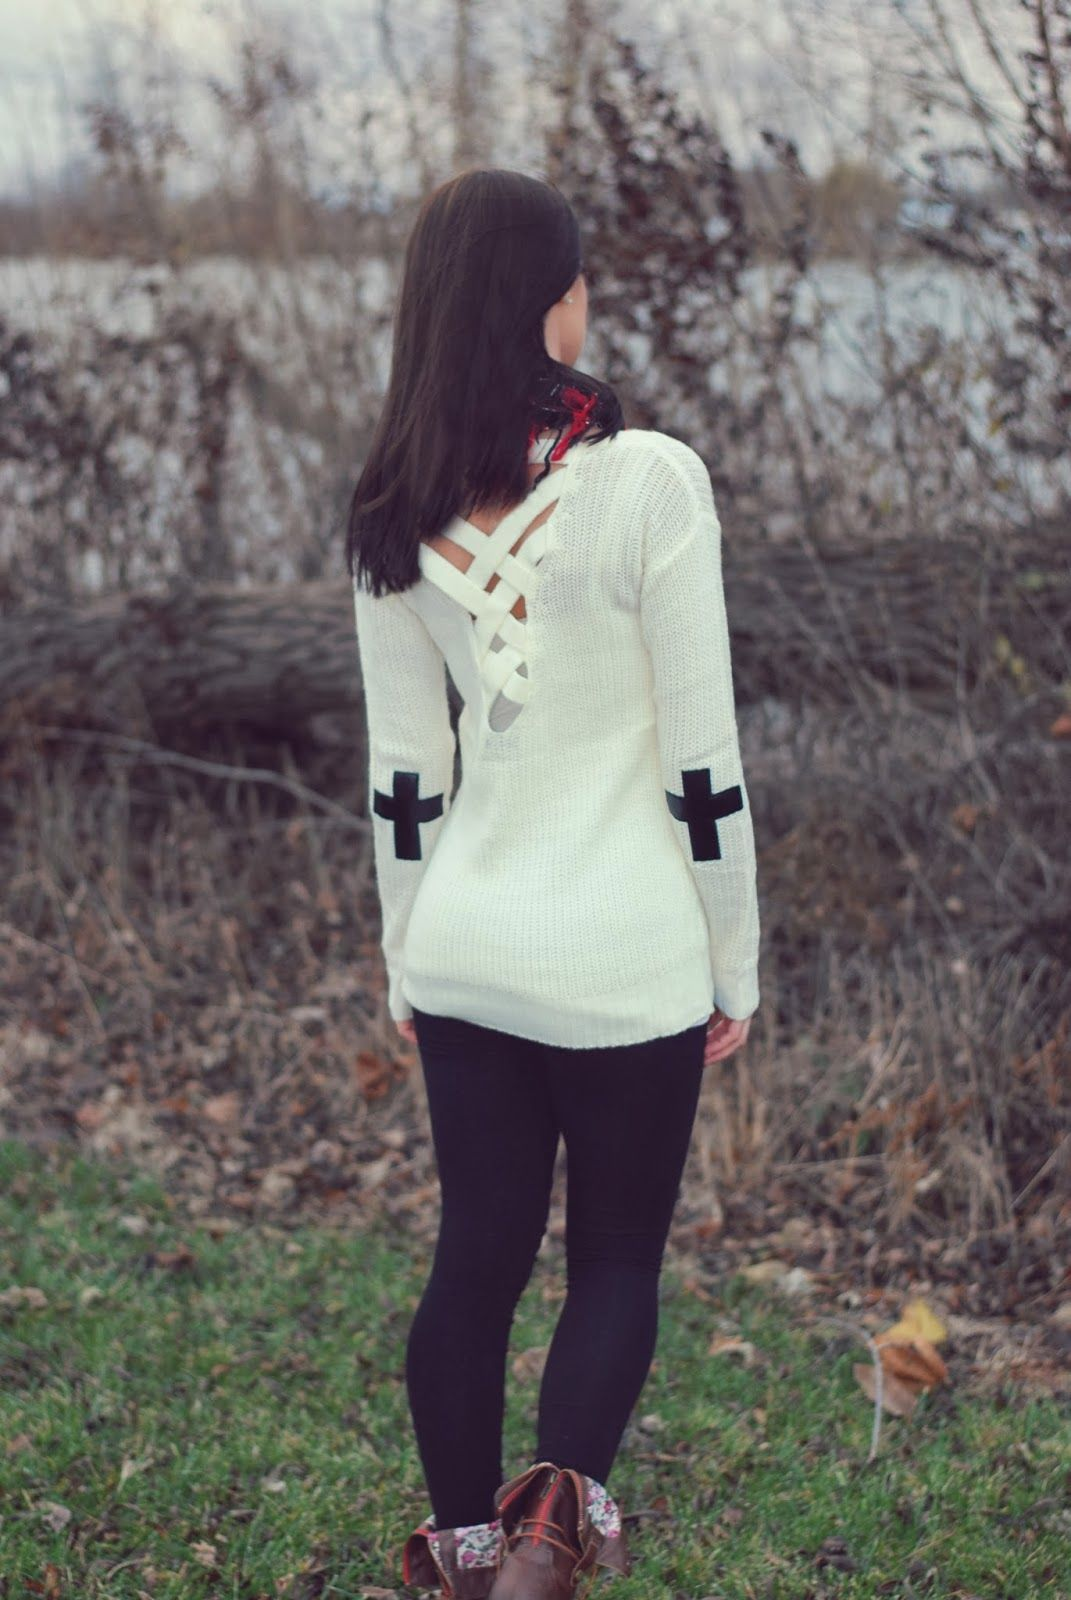 Cross elbow patches - love this sweater!